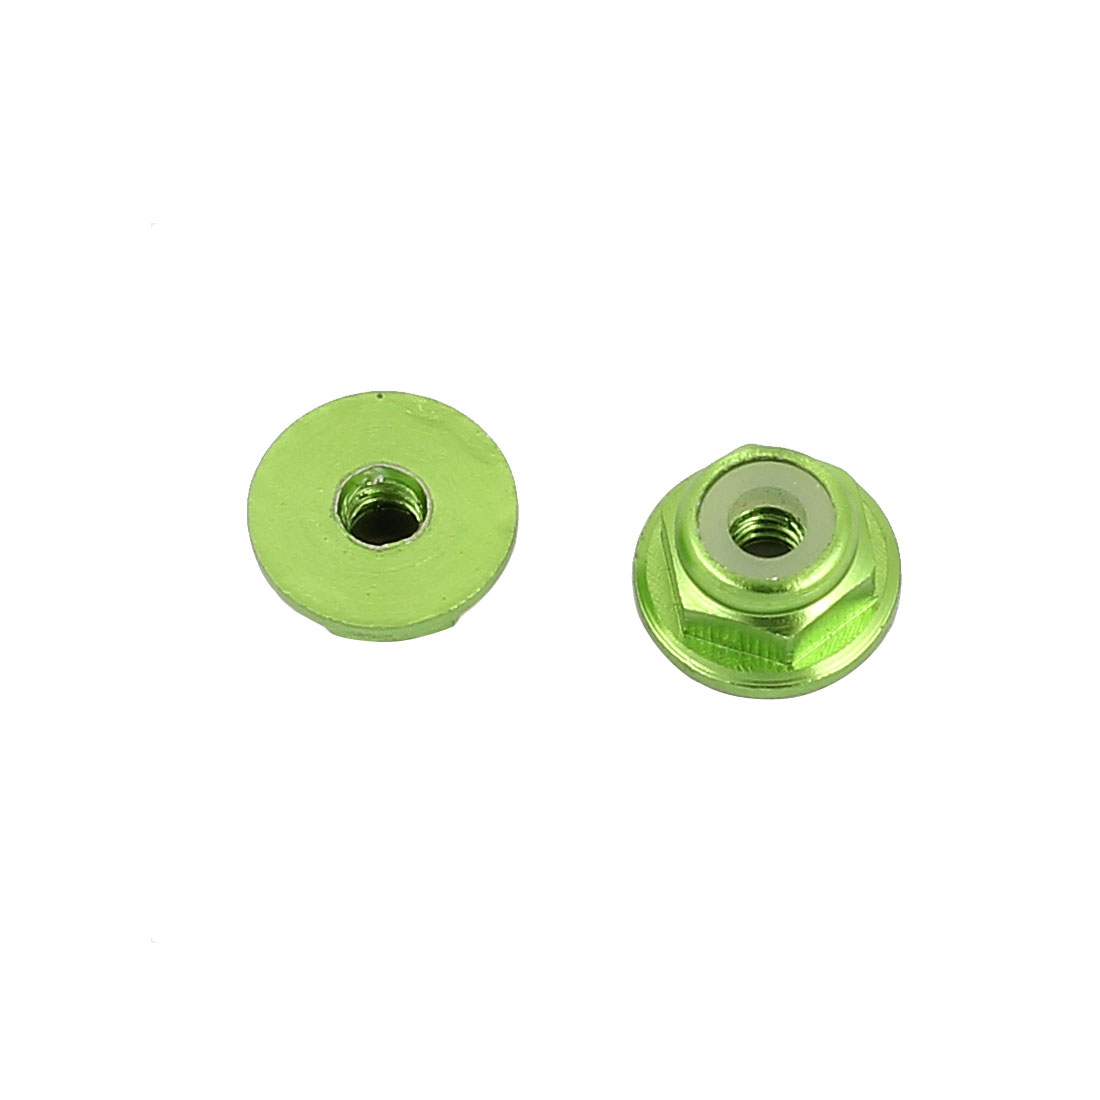 M2 Aluminum Alloy Green Flange Nut For RC Remote Vehicle DIY 2 Pcs